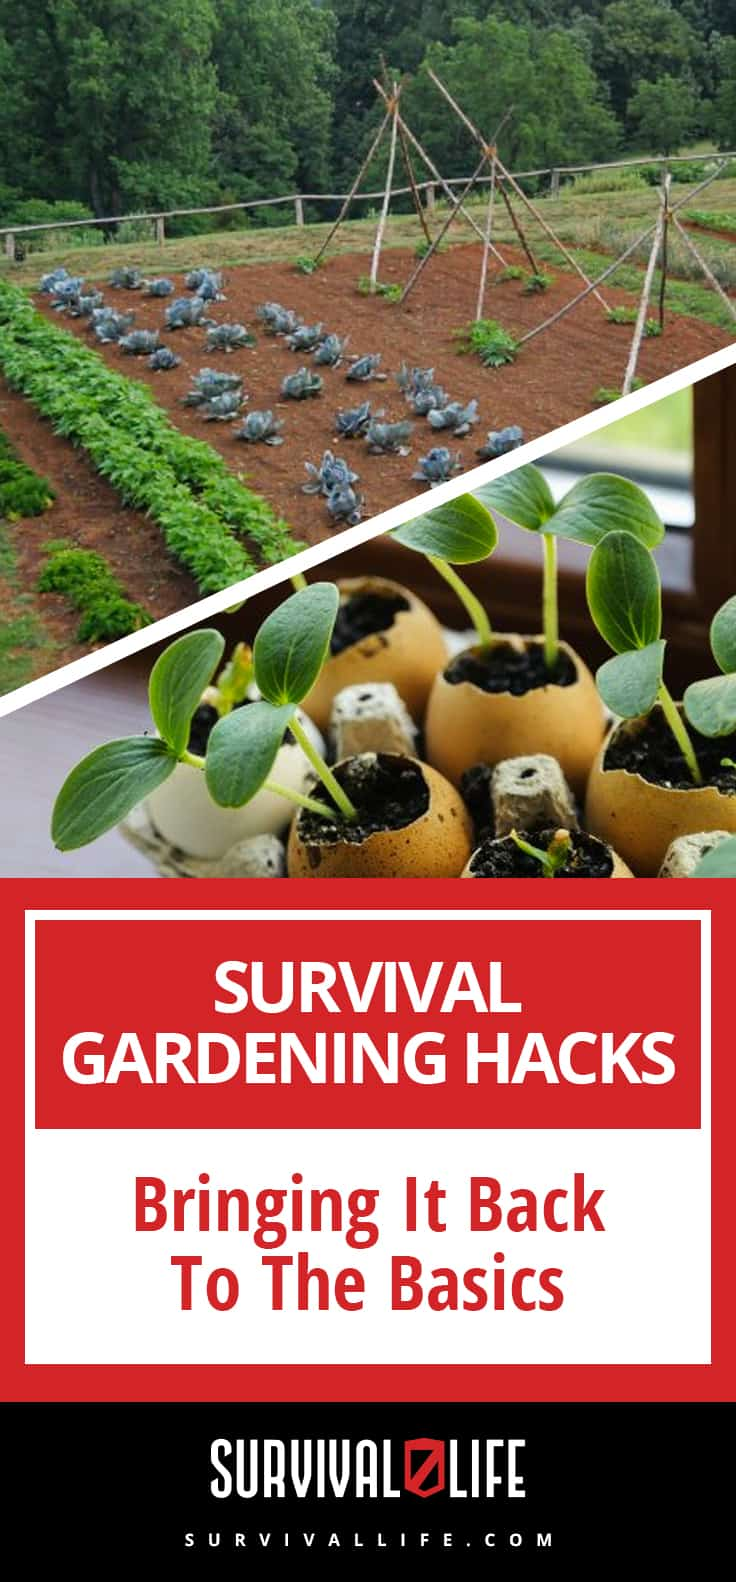 Survival Gardening Hacks | Bringing It Back To The Basics | https://survivallife.com/survival-gardening-hacks-basics/